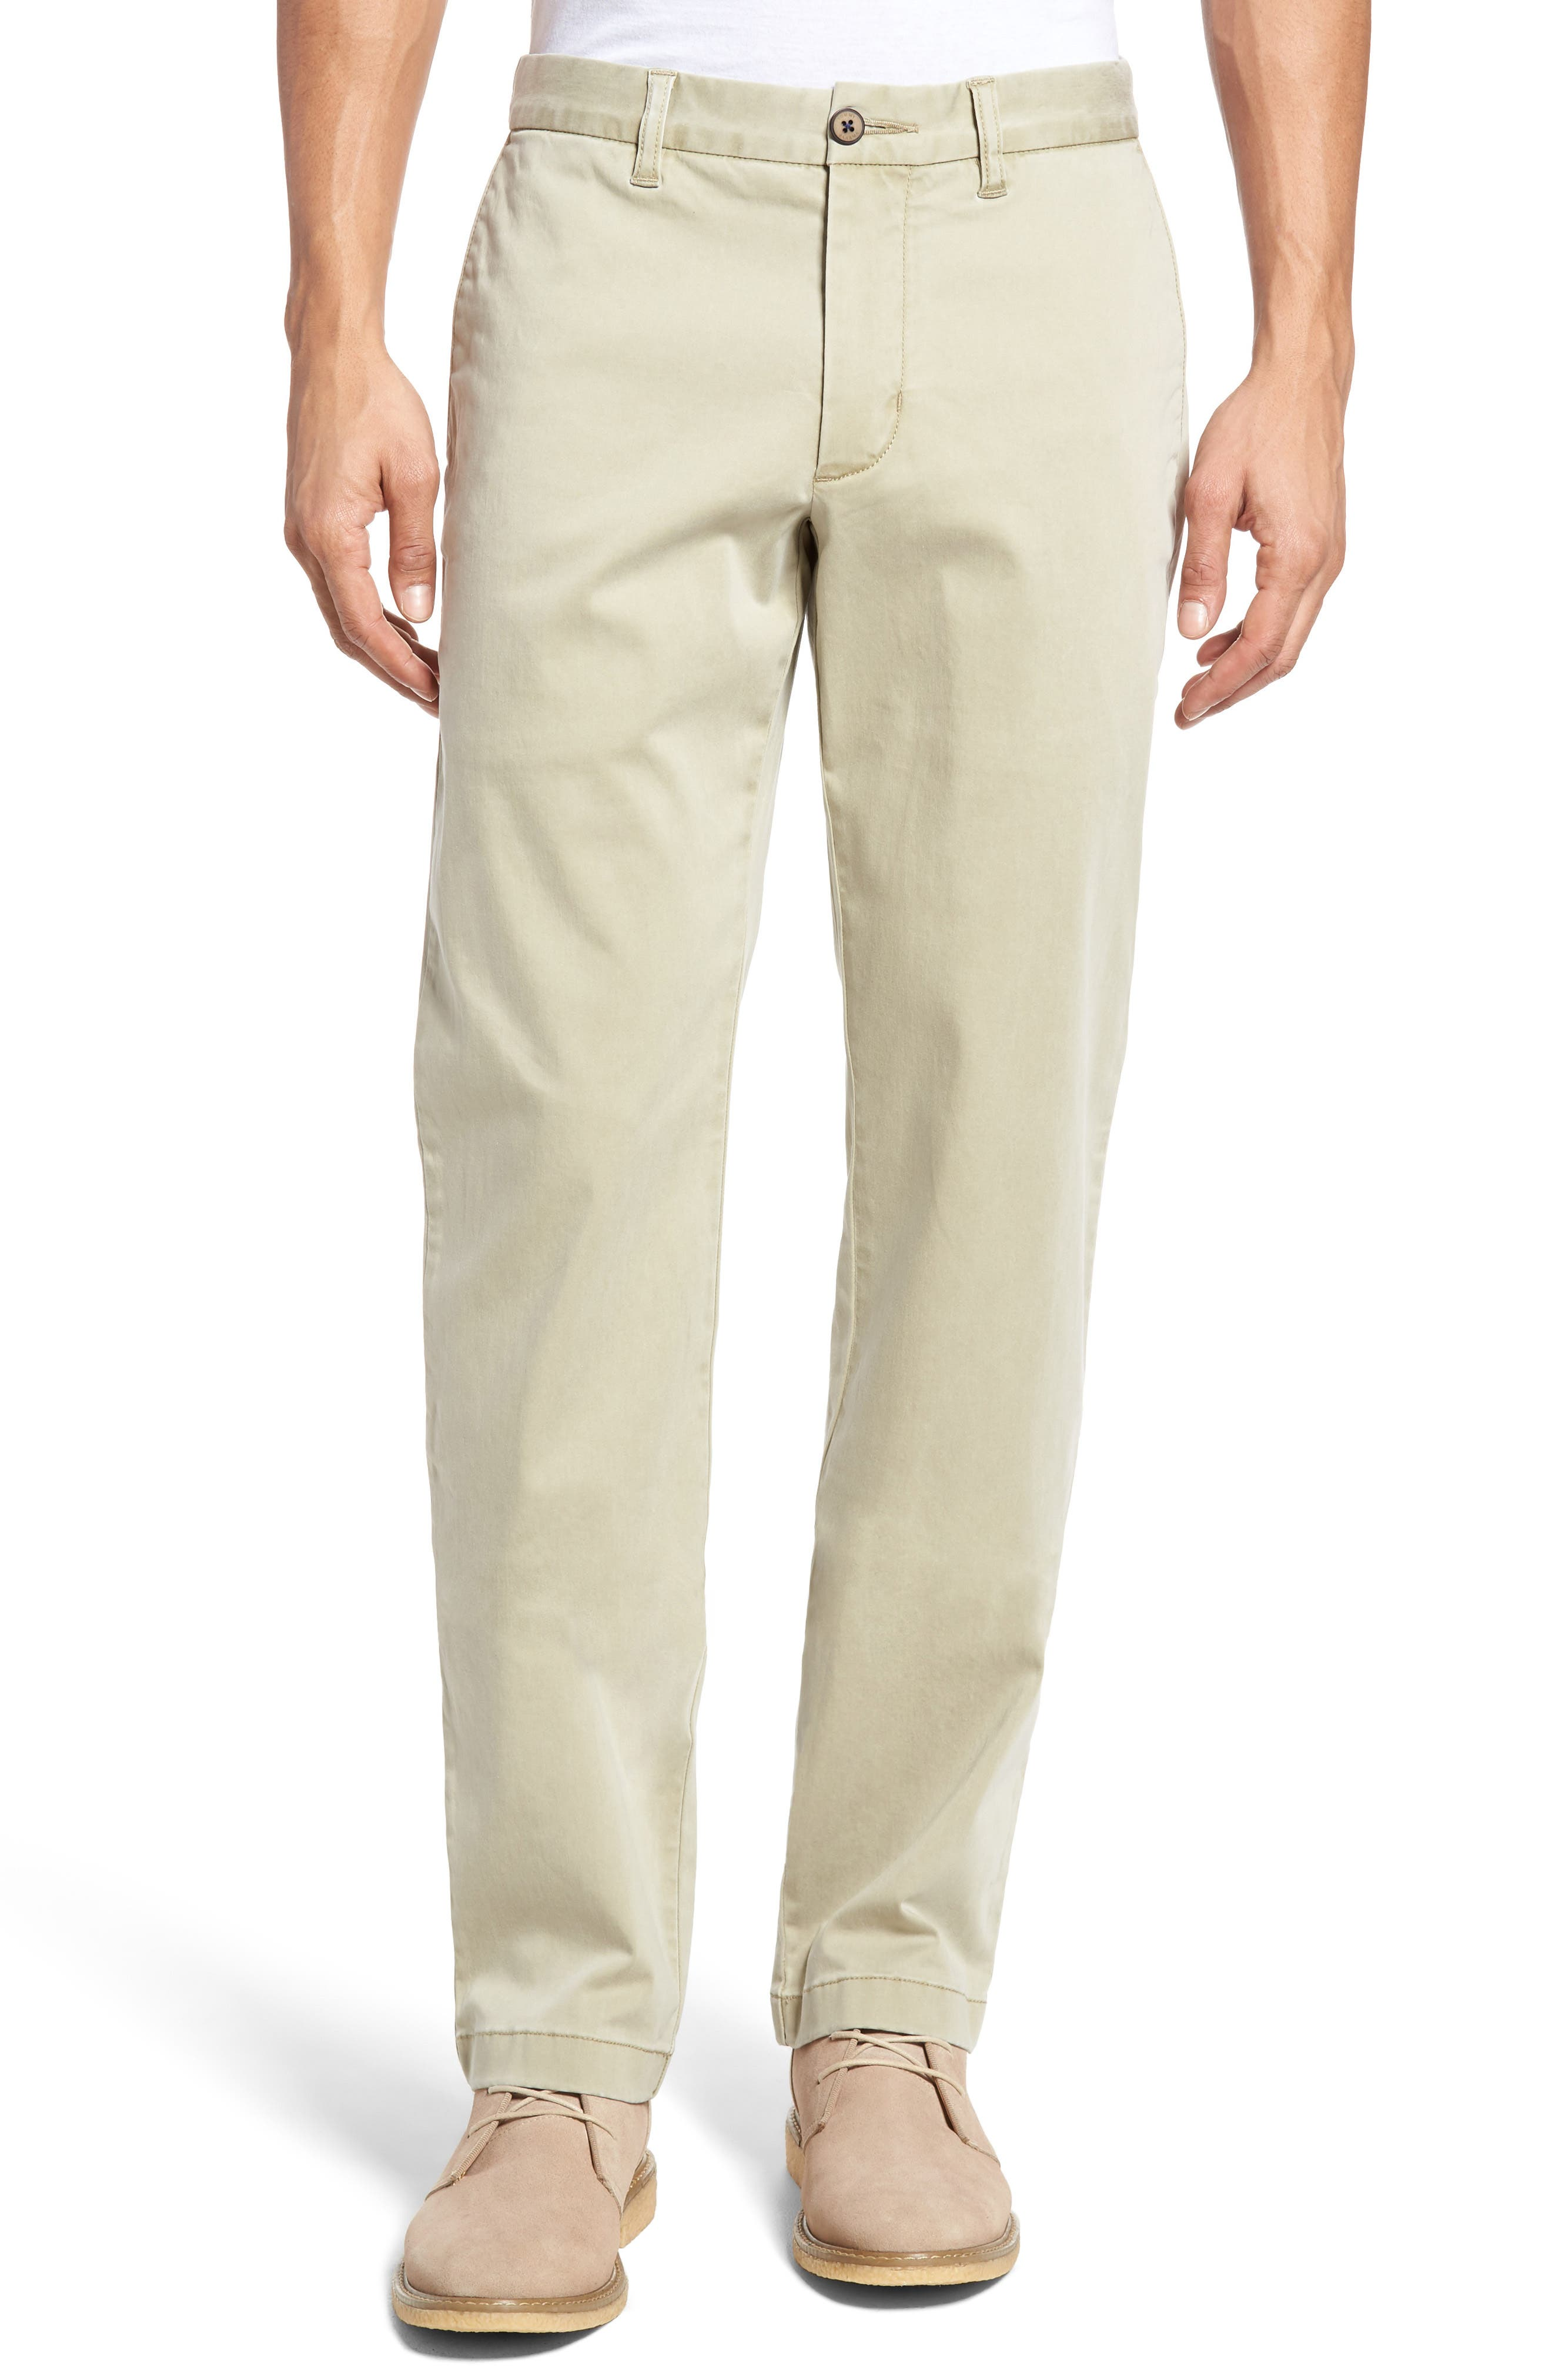 Boracay Flat Front Pants,                         Main,                         color, KHAKI